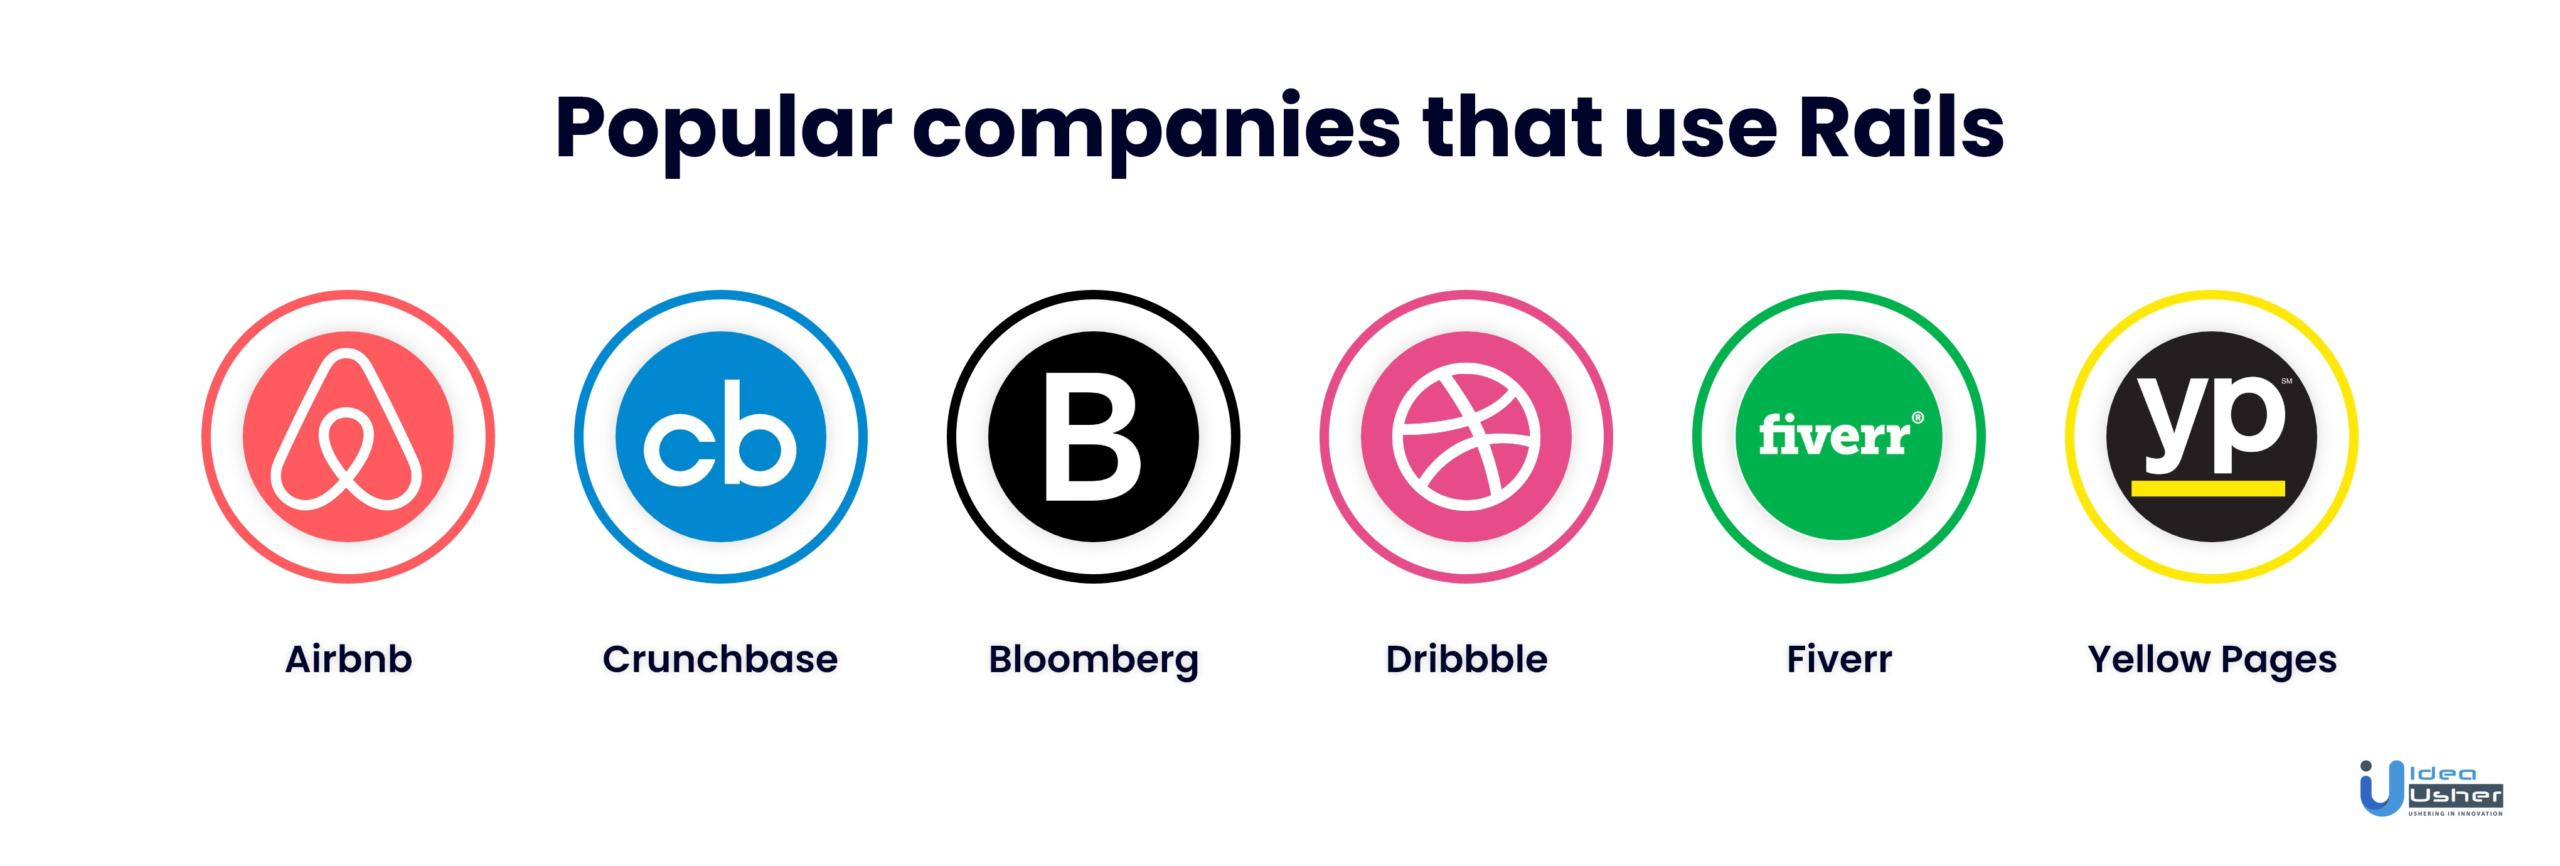 companies that use Rails